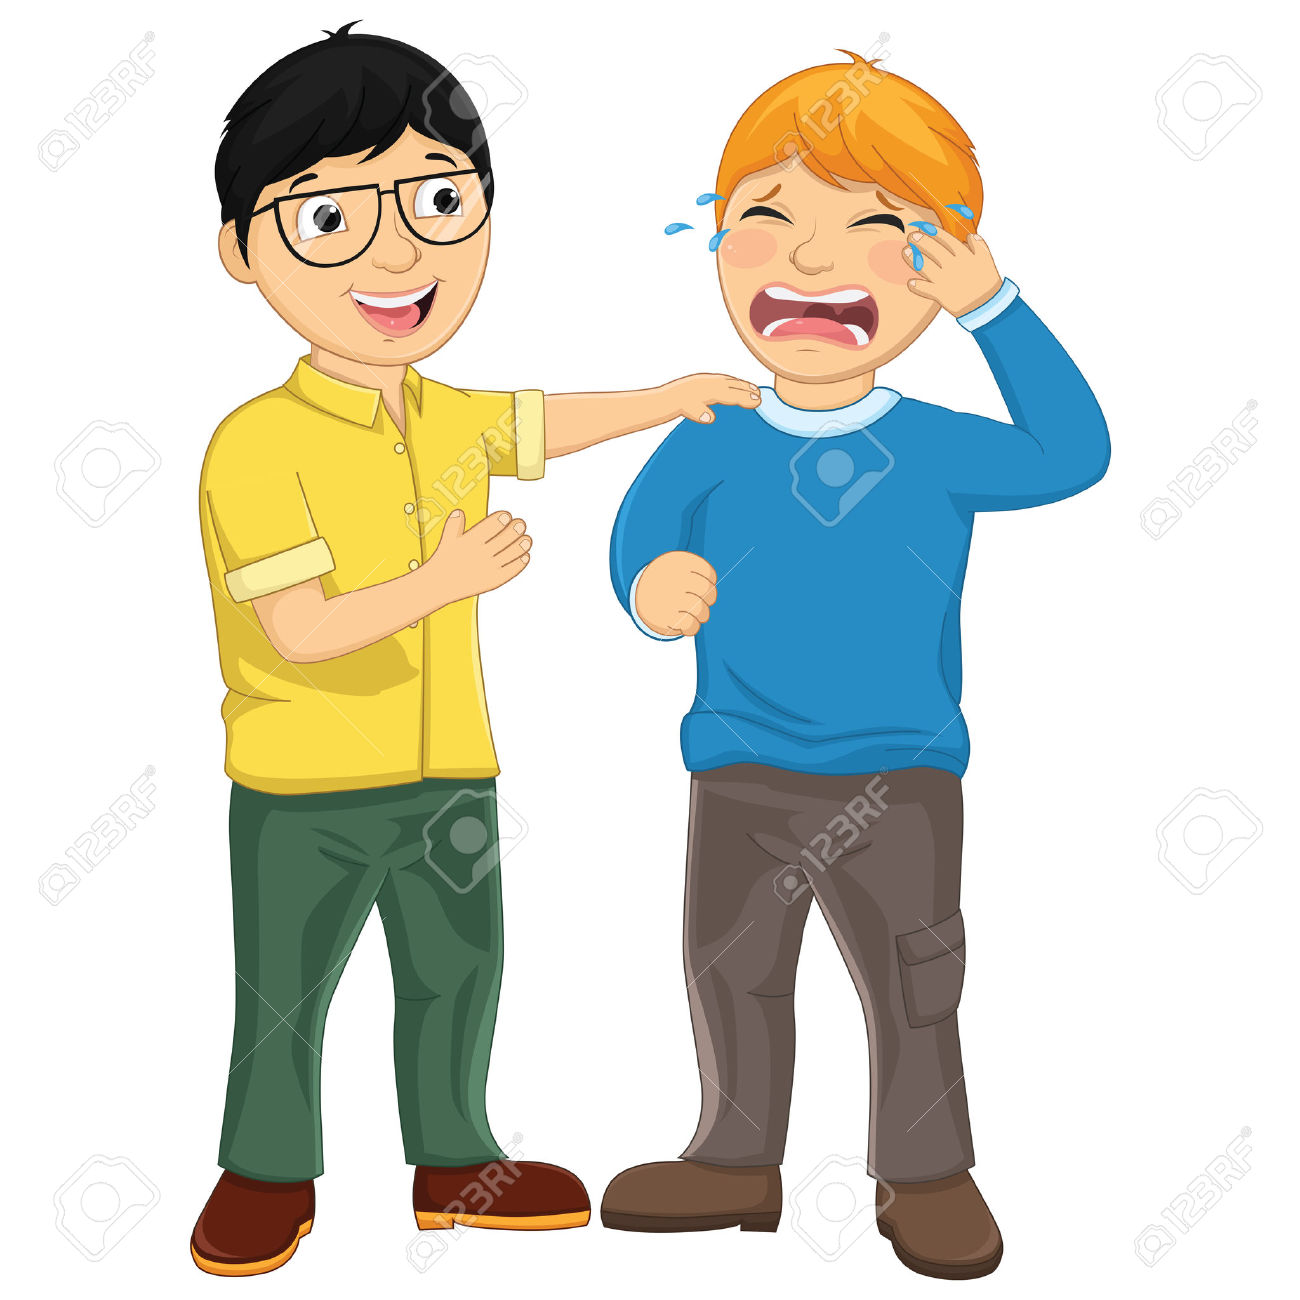 Kid Consoling Friend Vector Illustration Royalty Free Cliparts.